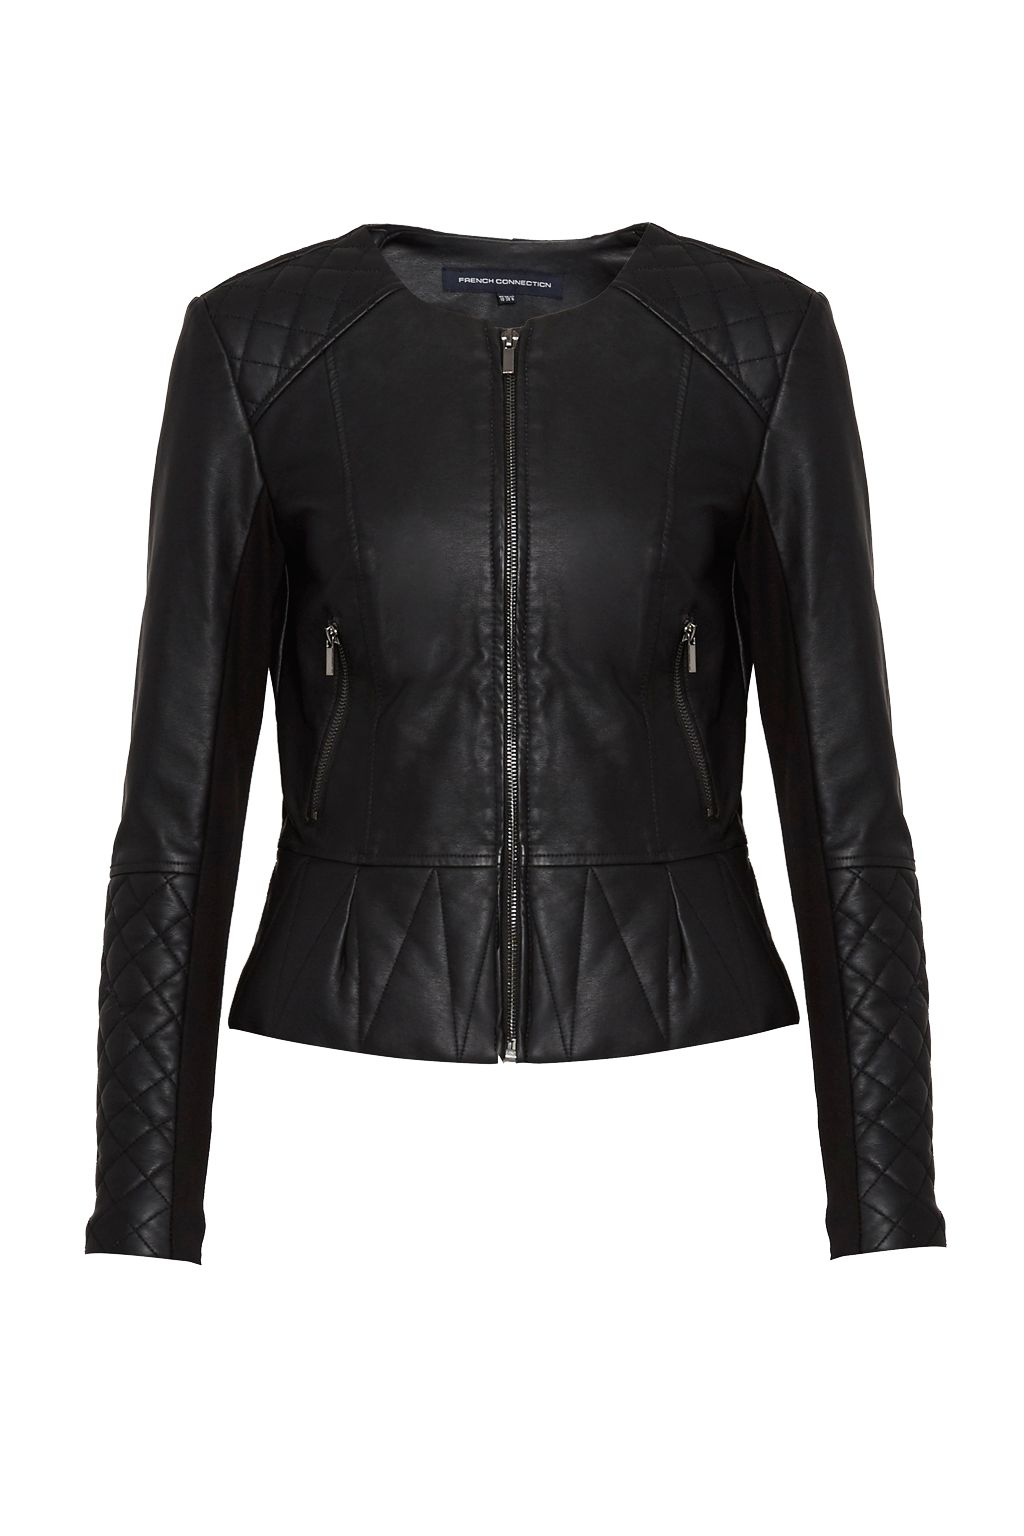 French Connection Stephanie Faux Leather Quilted Jacket, Black